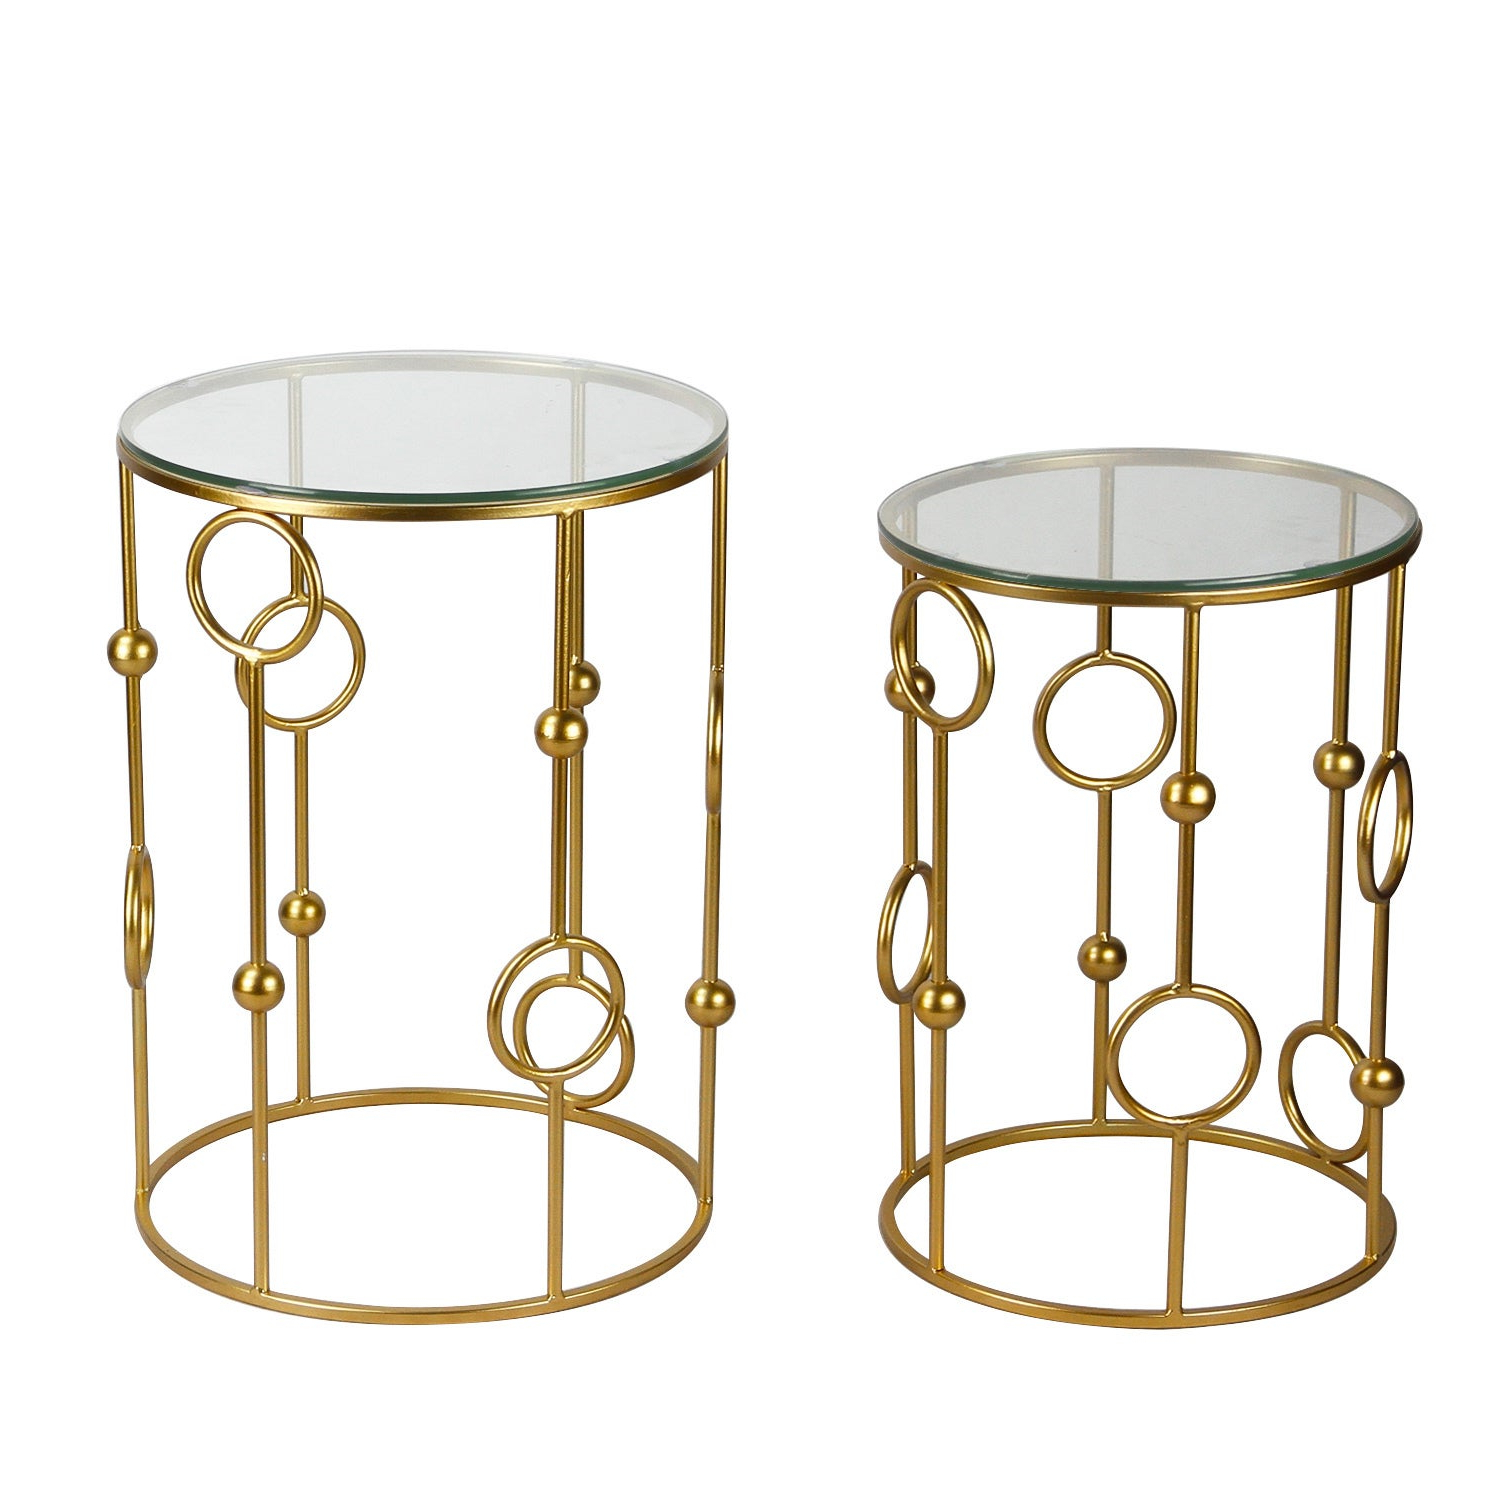 2019 Adeco Accent Postmodernism Drum Shape Black Metal Coffee Tables Regarding Adeco Home Garden Patio Accent Metal Nesting Postmodernism Golden Side End  Tea Coffee Tables (Set Of 2) (Gallery 4 of 20)